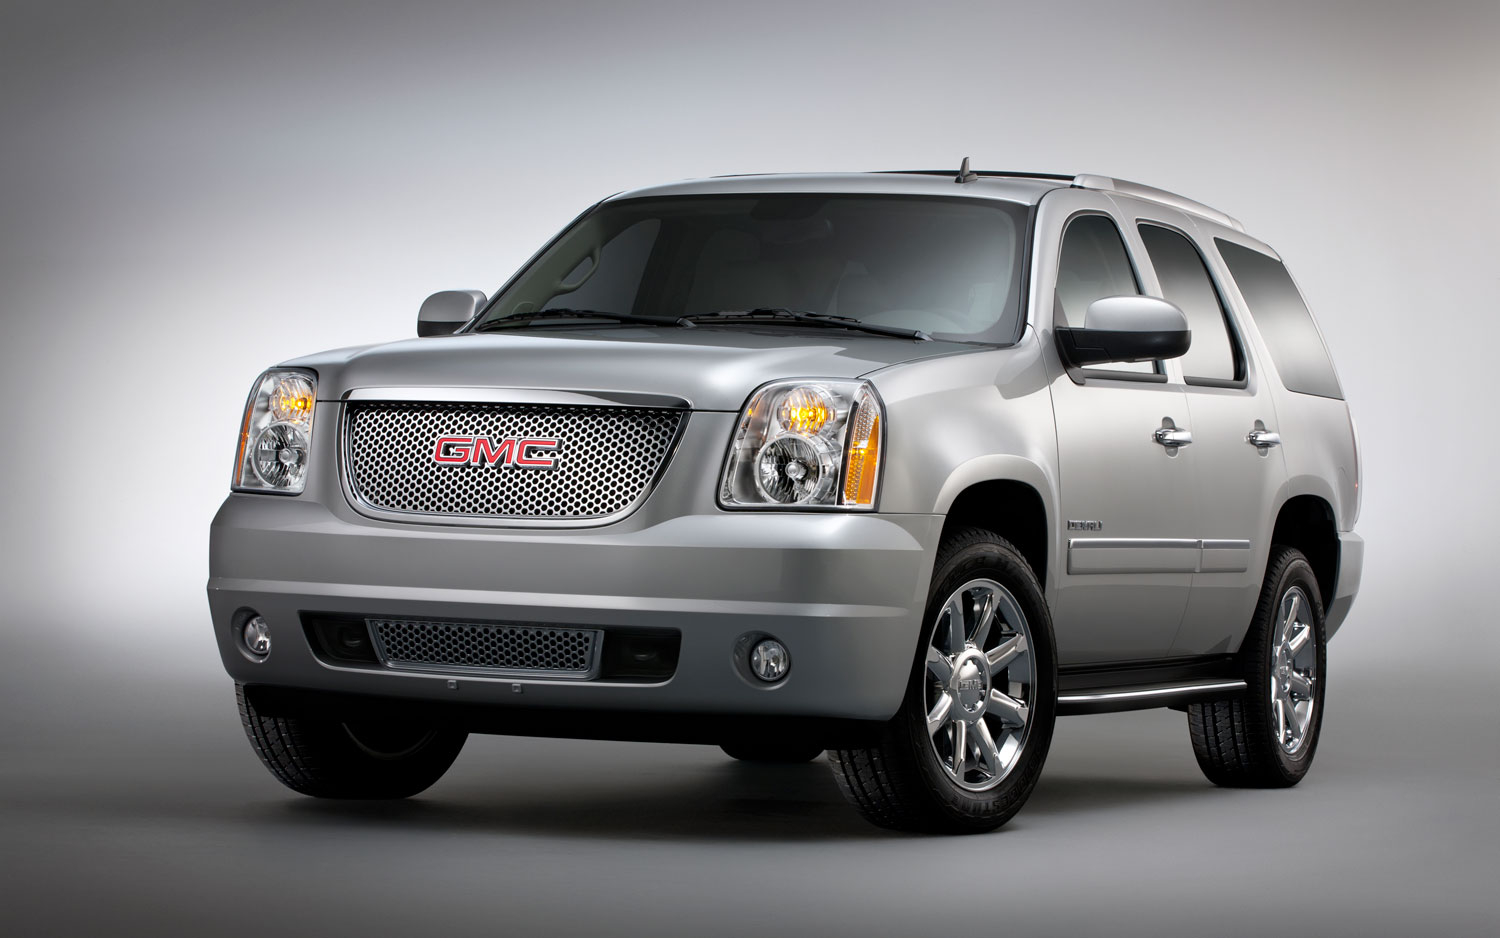 report gm to extend denali line to 2013 gmc terrain crossover. Black Bedroom Furniture Sets. Home Design Ideas